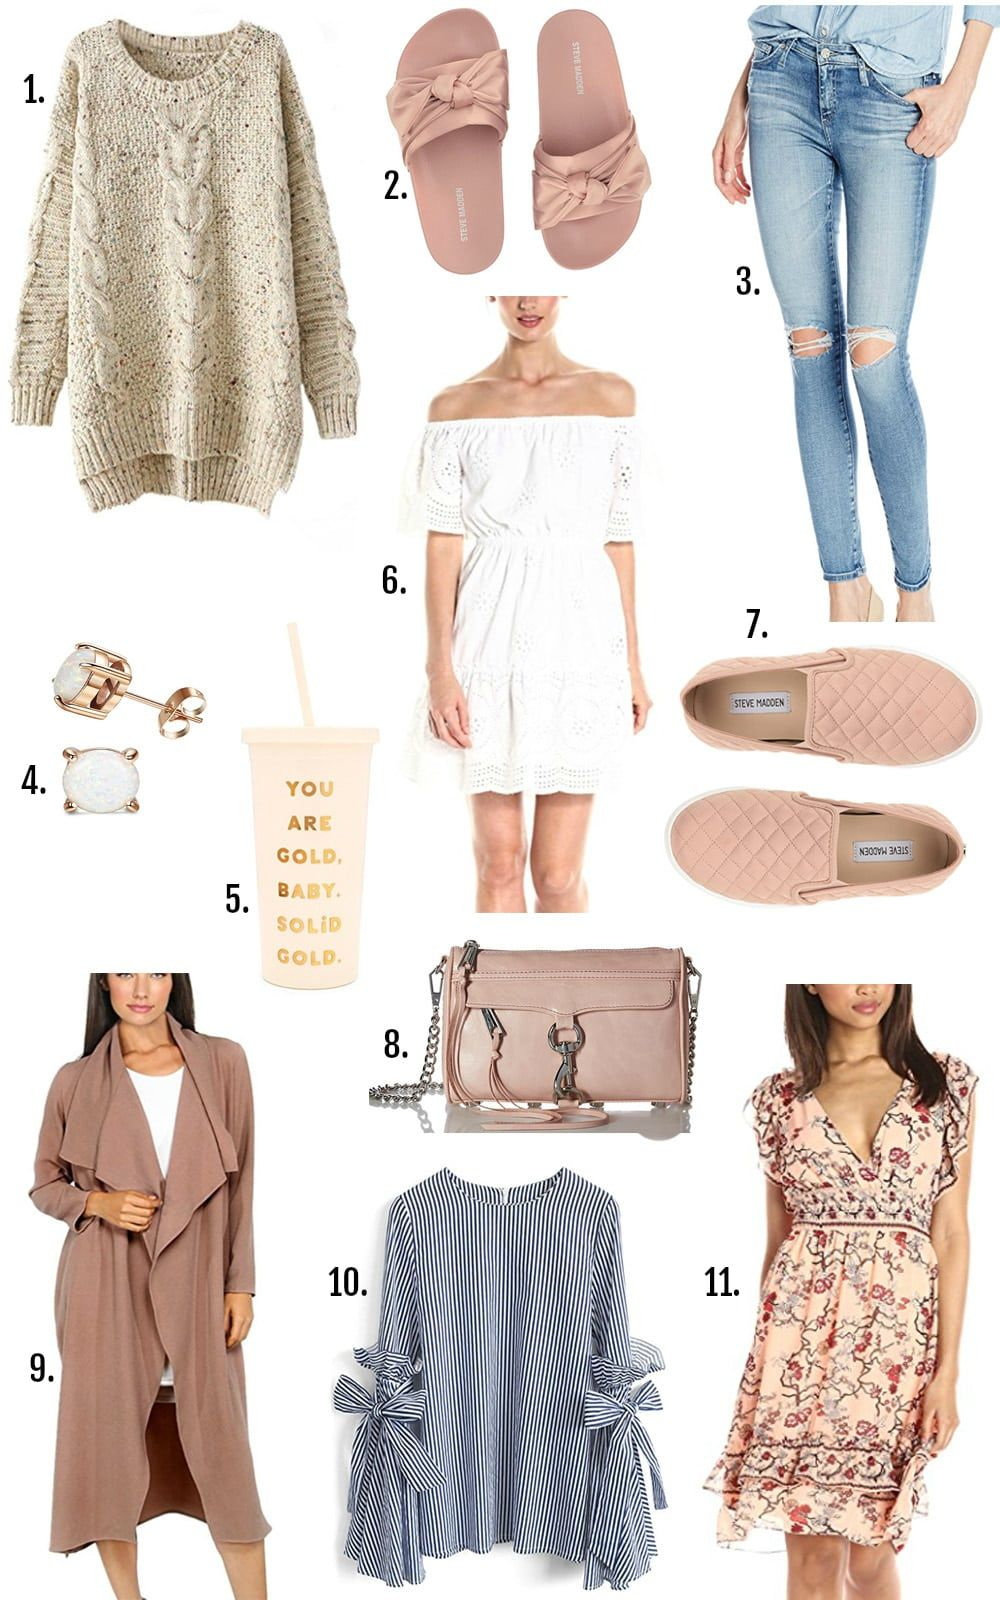 Shop Ultimate Amazon Fashion Shopping Guide This Spring  Mash